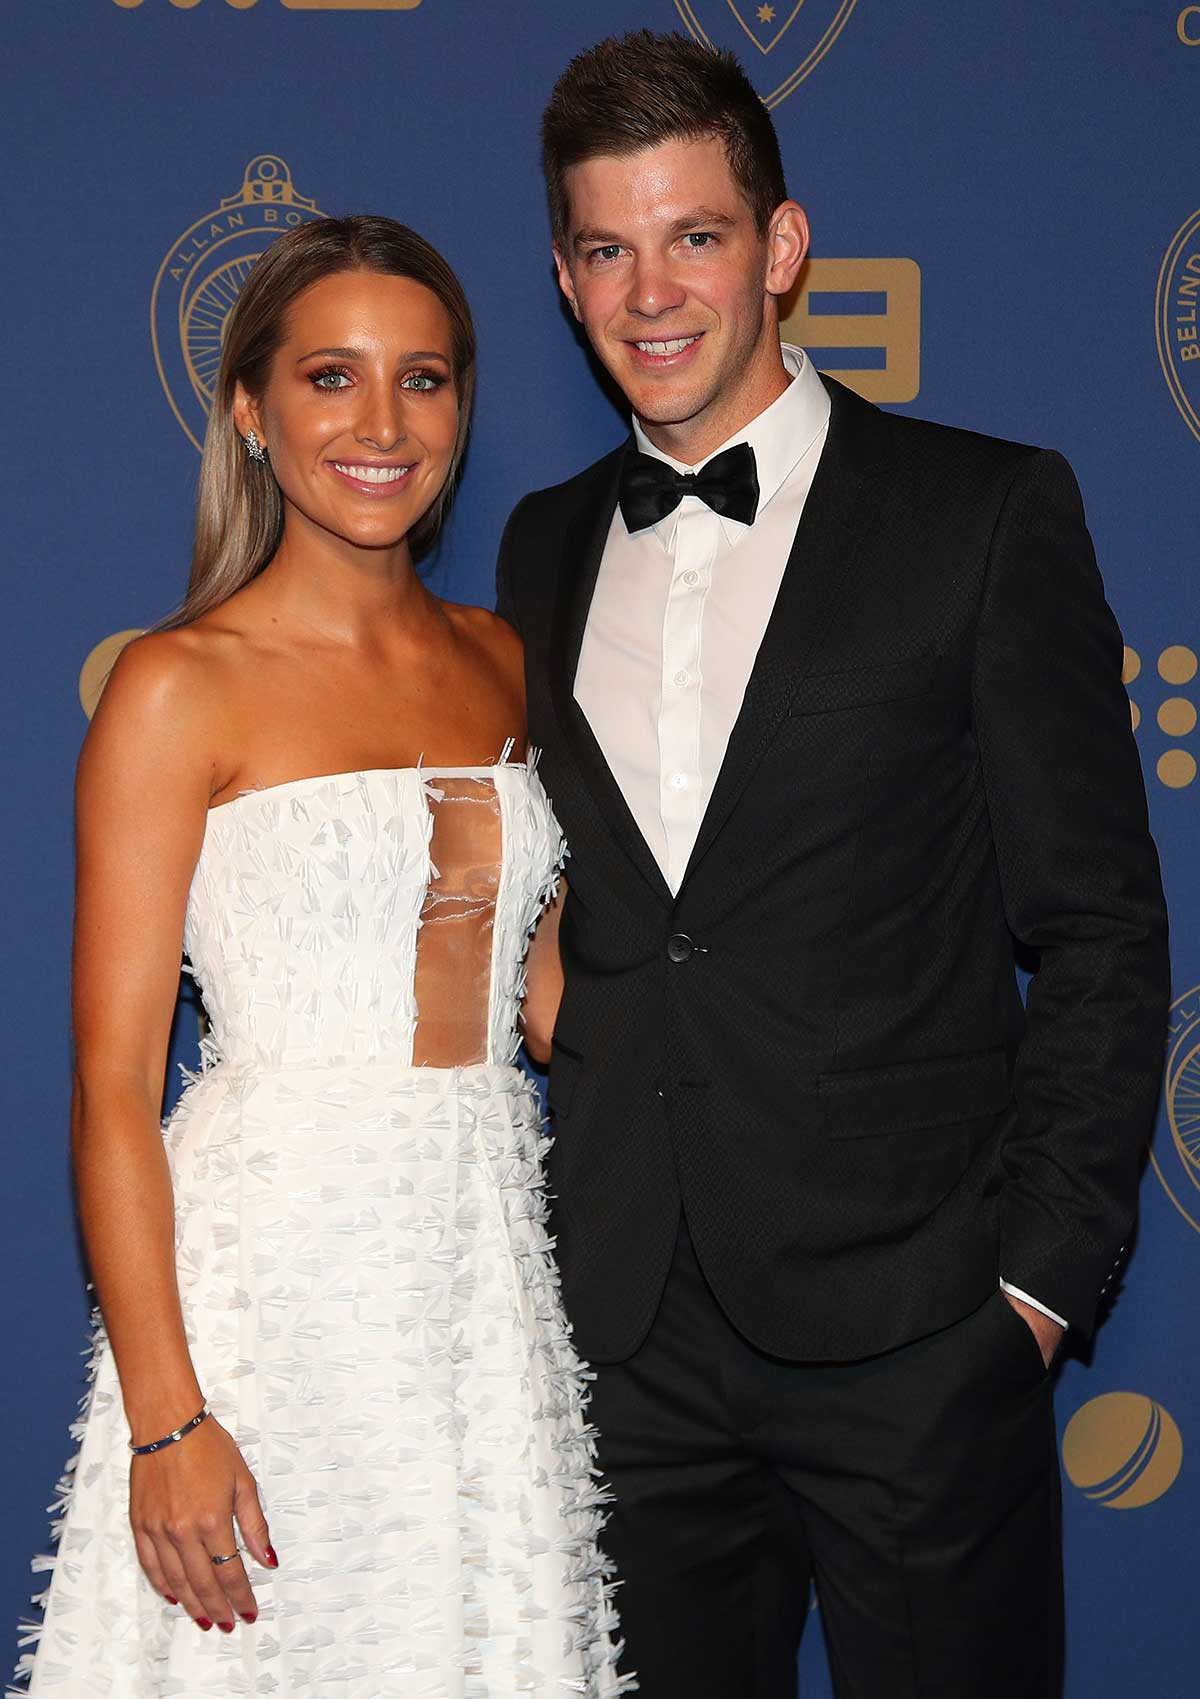 Tim Paine and wife Bonnie // Getty